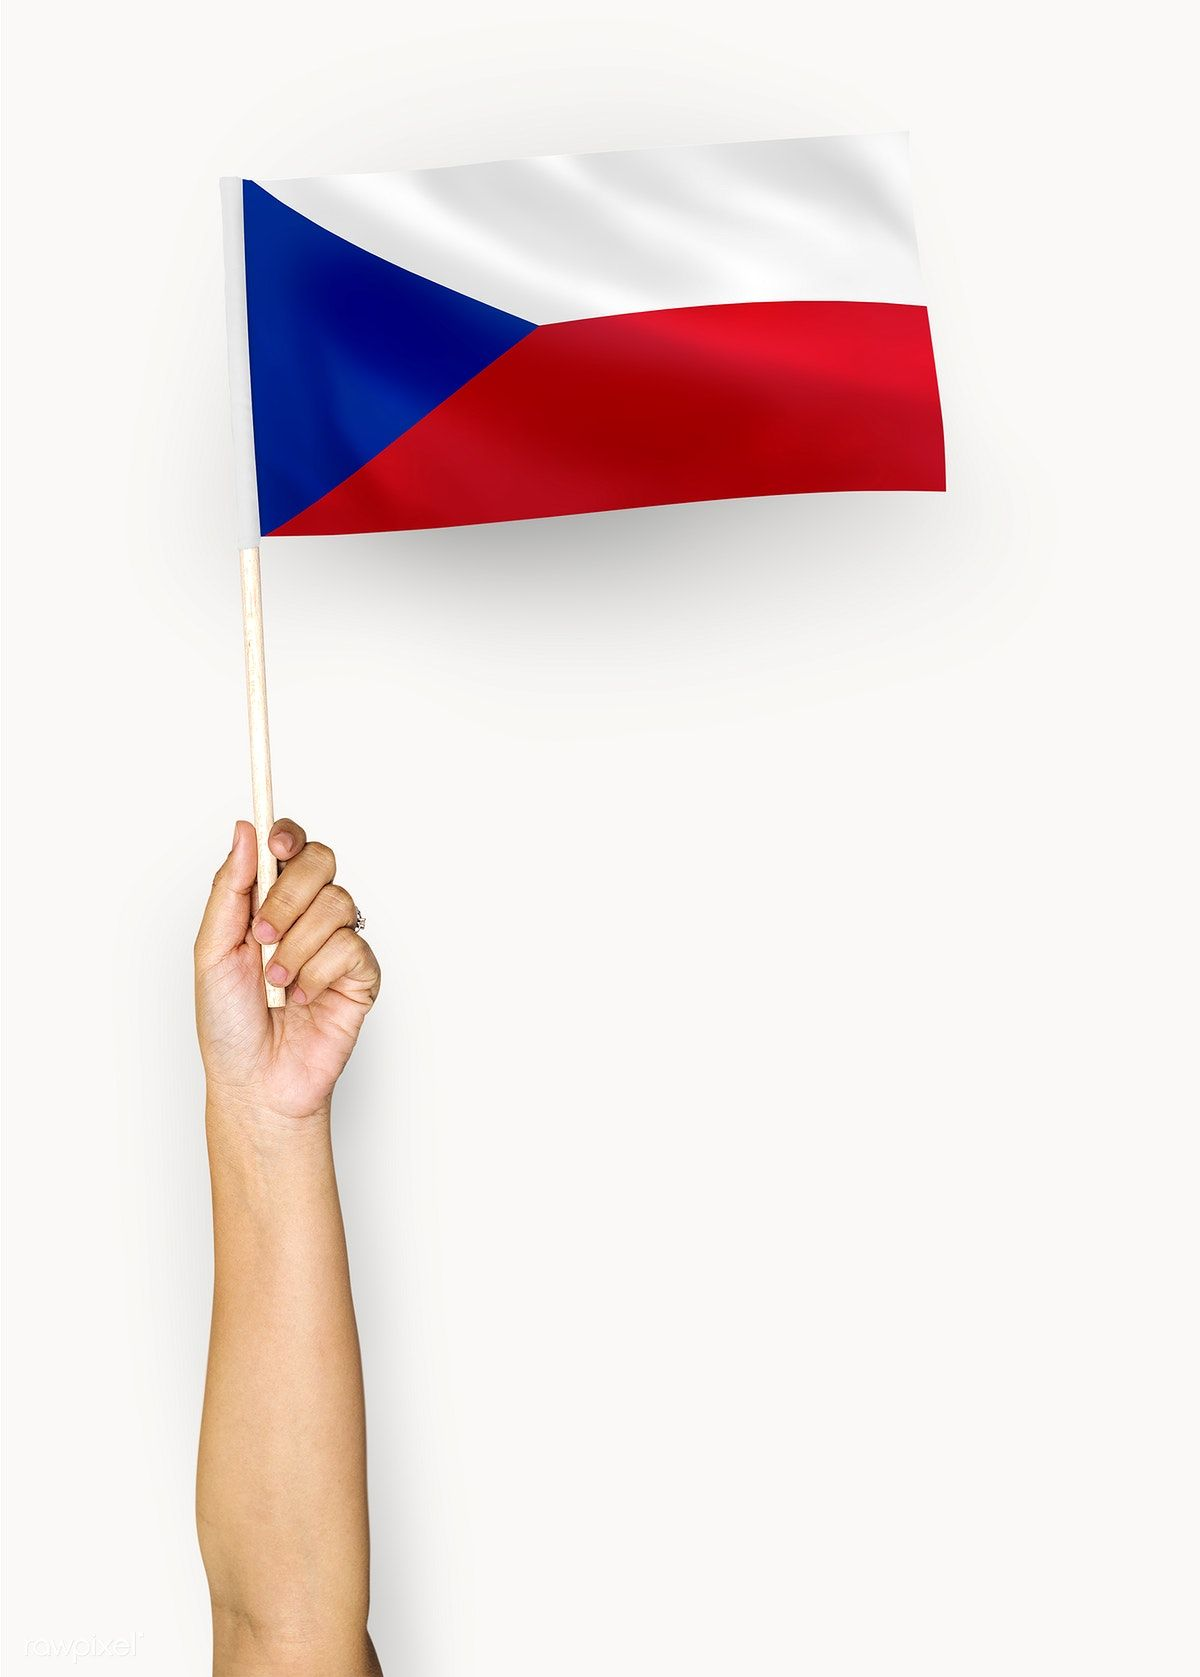 Download Premium Psd Of Person Waving The Flag Of Czech Republic 422483 Flags Of The World Flag Czech Republic